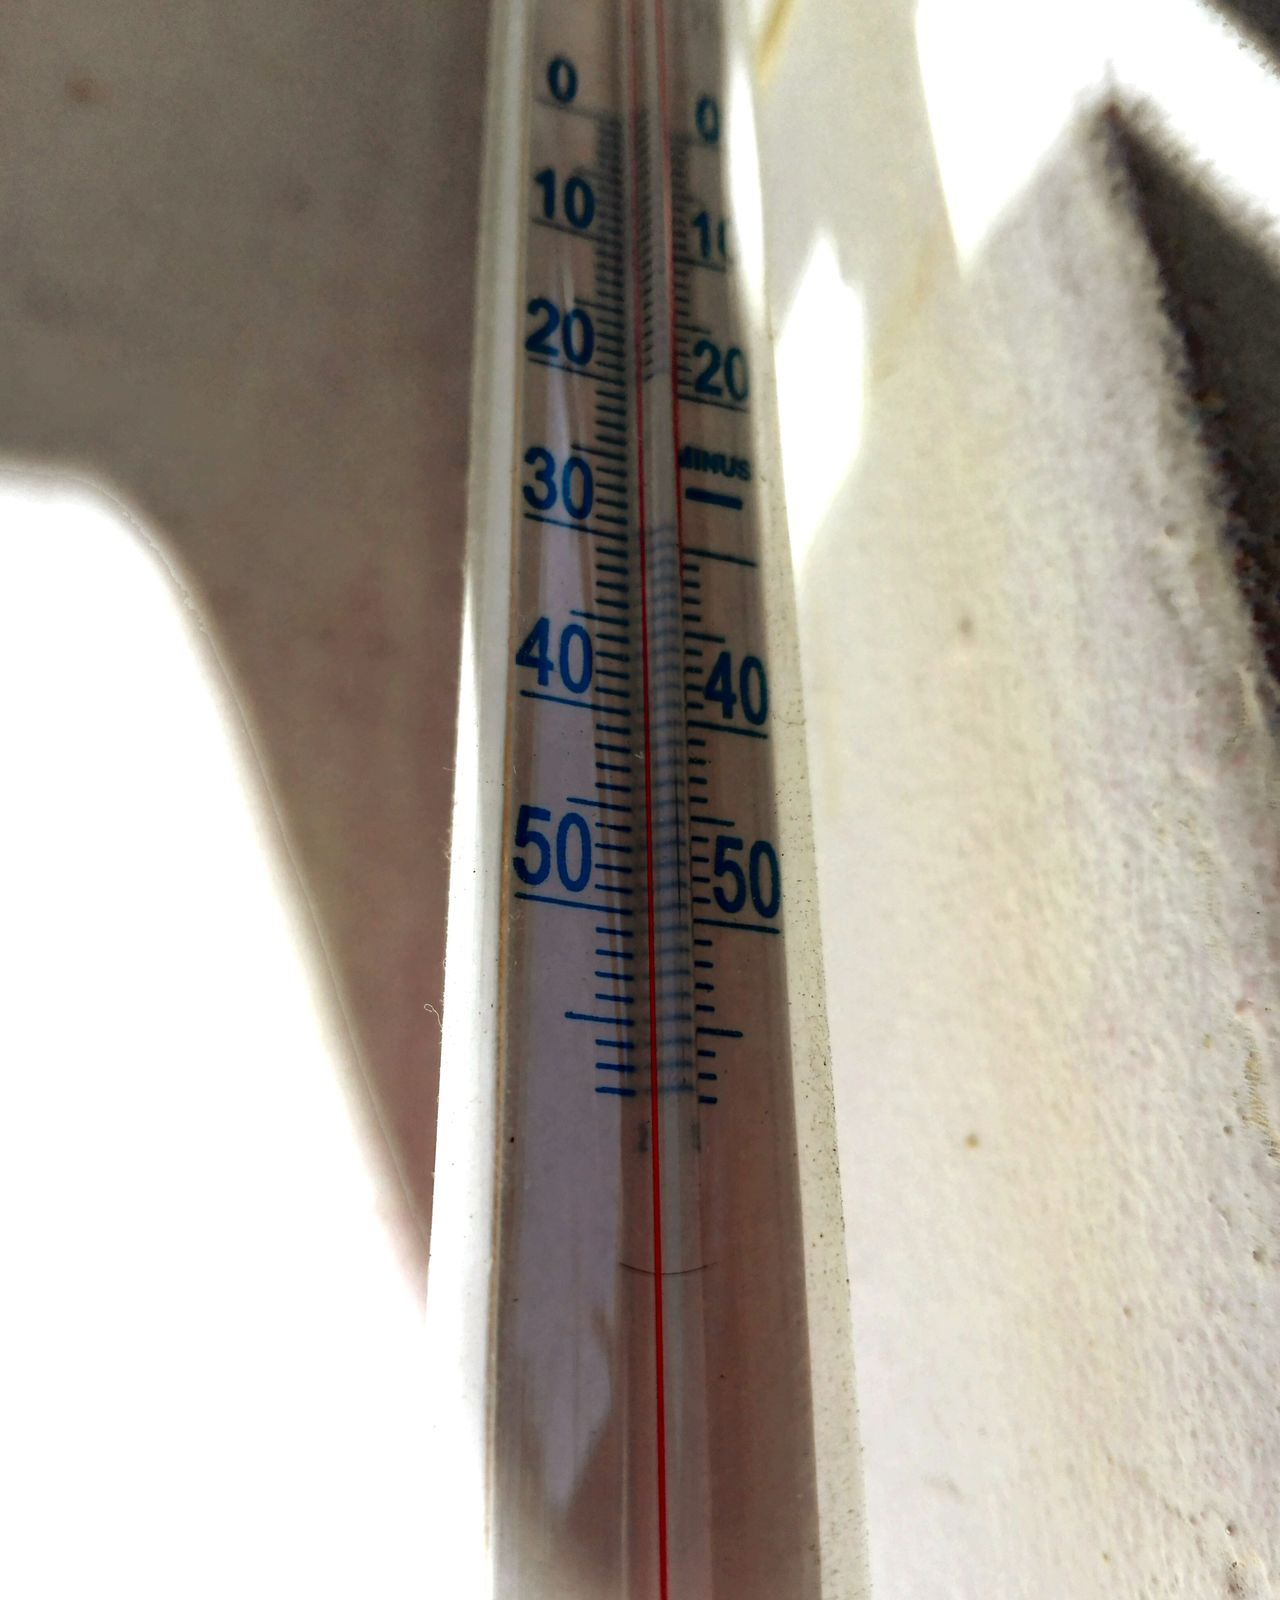 Temperature No People Thermometer Close-up 24 Degrees Celsius Degree Twentyfour Twentyfour Degree Celsius Ionitaveronica Wolfzuachis Showcase: March Veronica Ionita Eyeem Market @WOLFZUACHiV Showcase: 2017 Huaweiphotography Wolfzuachiv On Market Edited By @wolfzuachis Veronicaionita Termometer Warm Weather Celsius Warm Outdoors Termometer